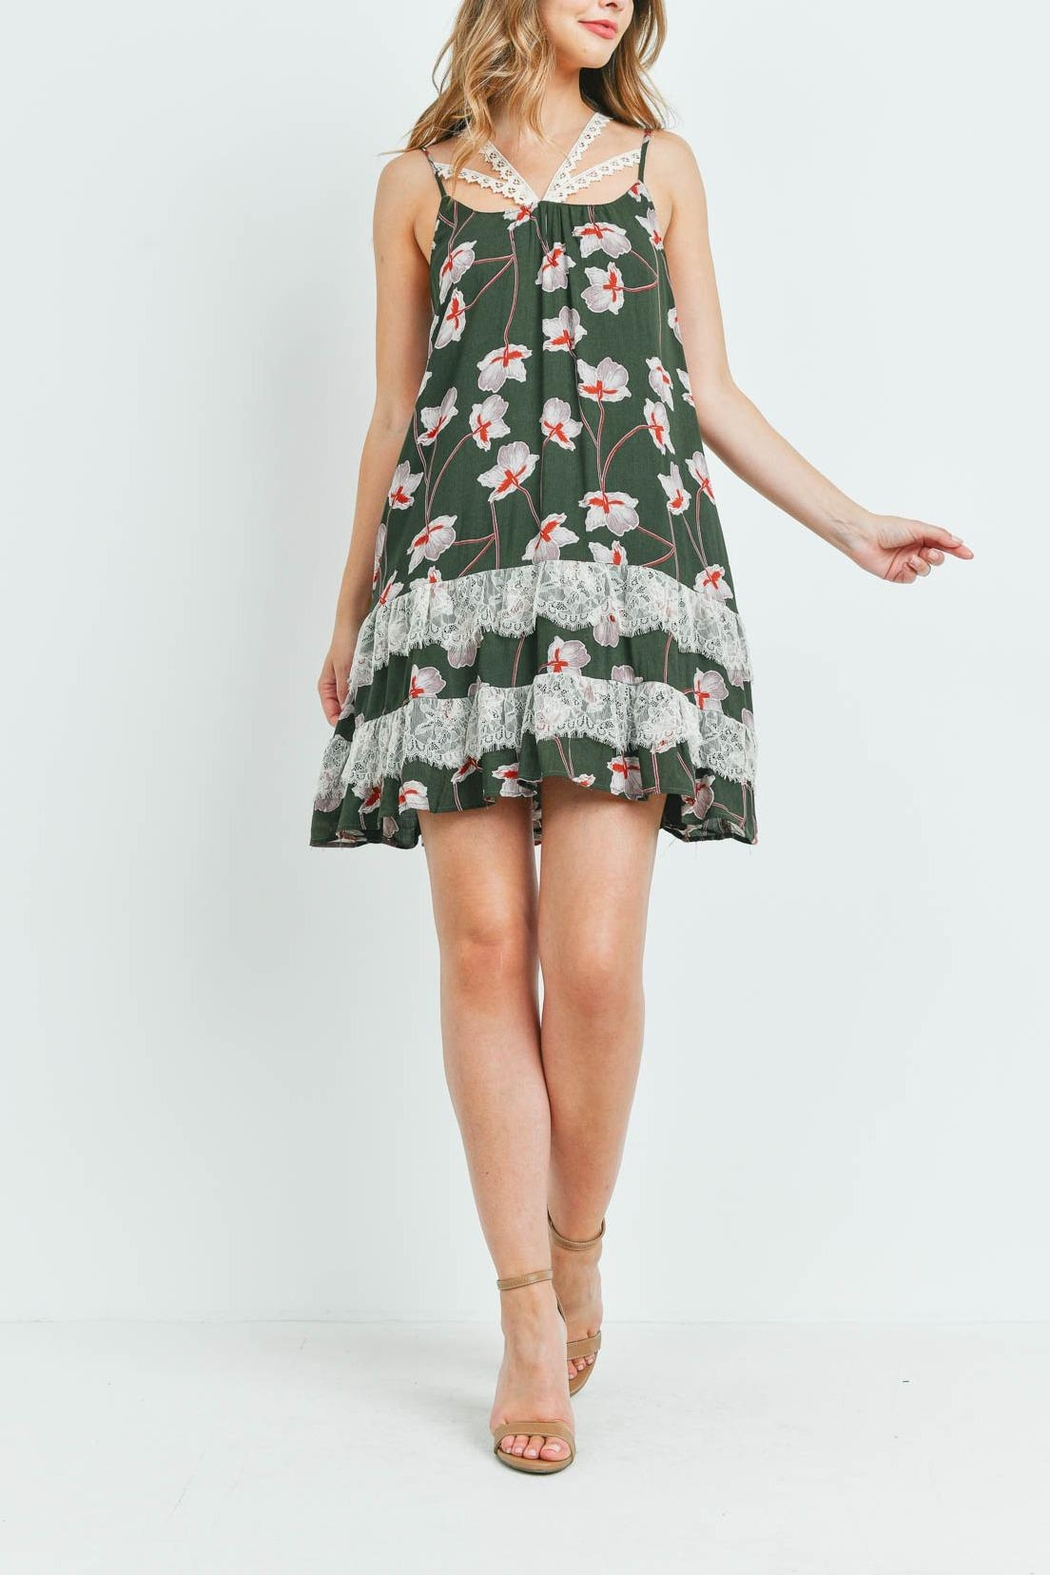 Riah Fashion Dark-Olive With-Flower-Print-Dress - Side Cropped Image